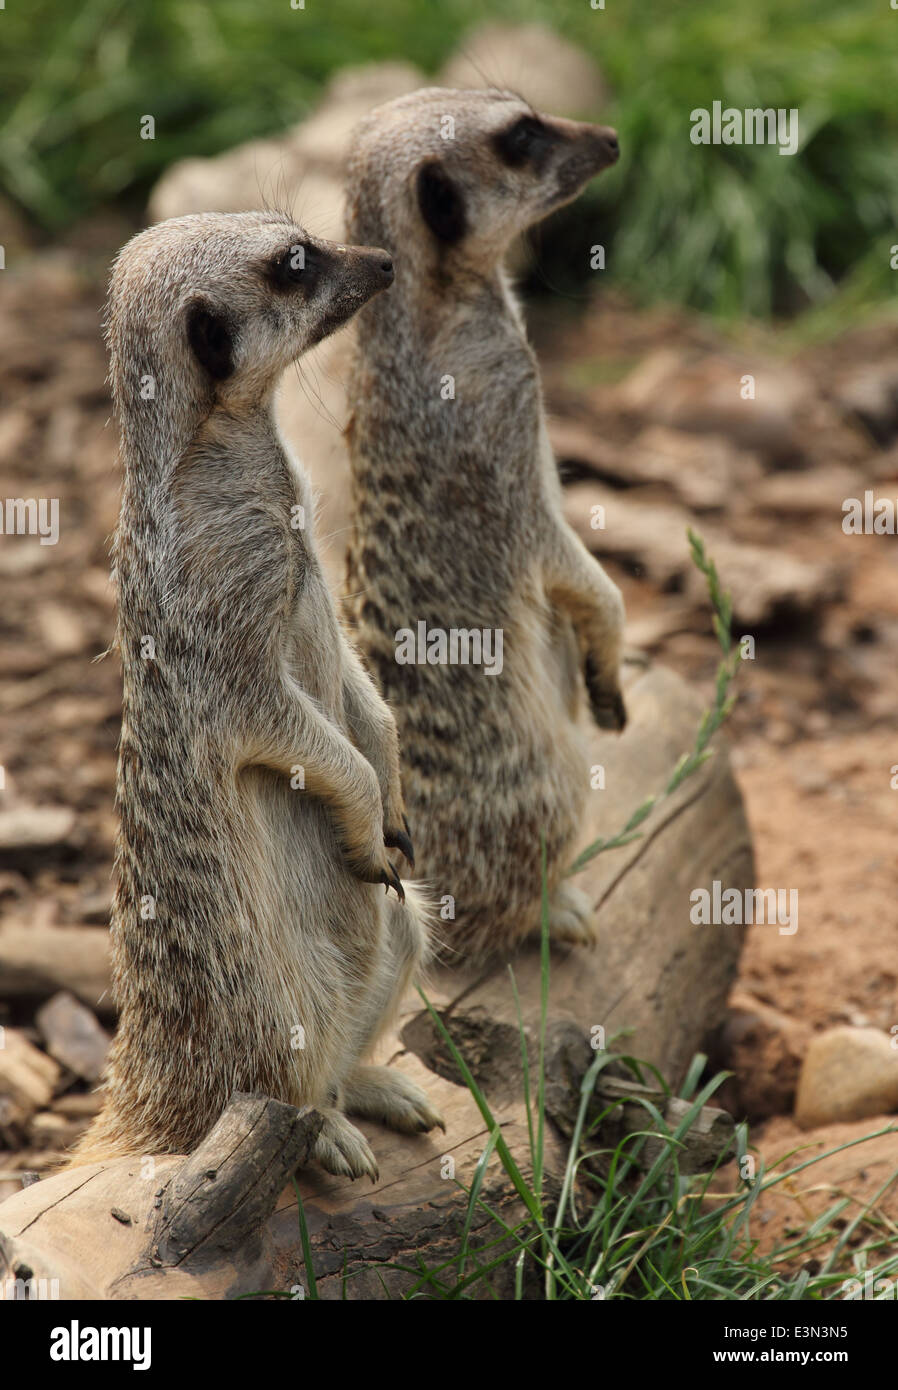 Two meerkats standing to attention and looking away from camera. Wildlife park. - Stock Image